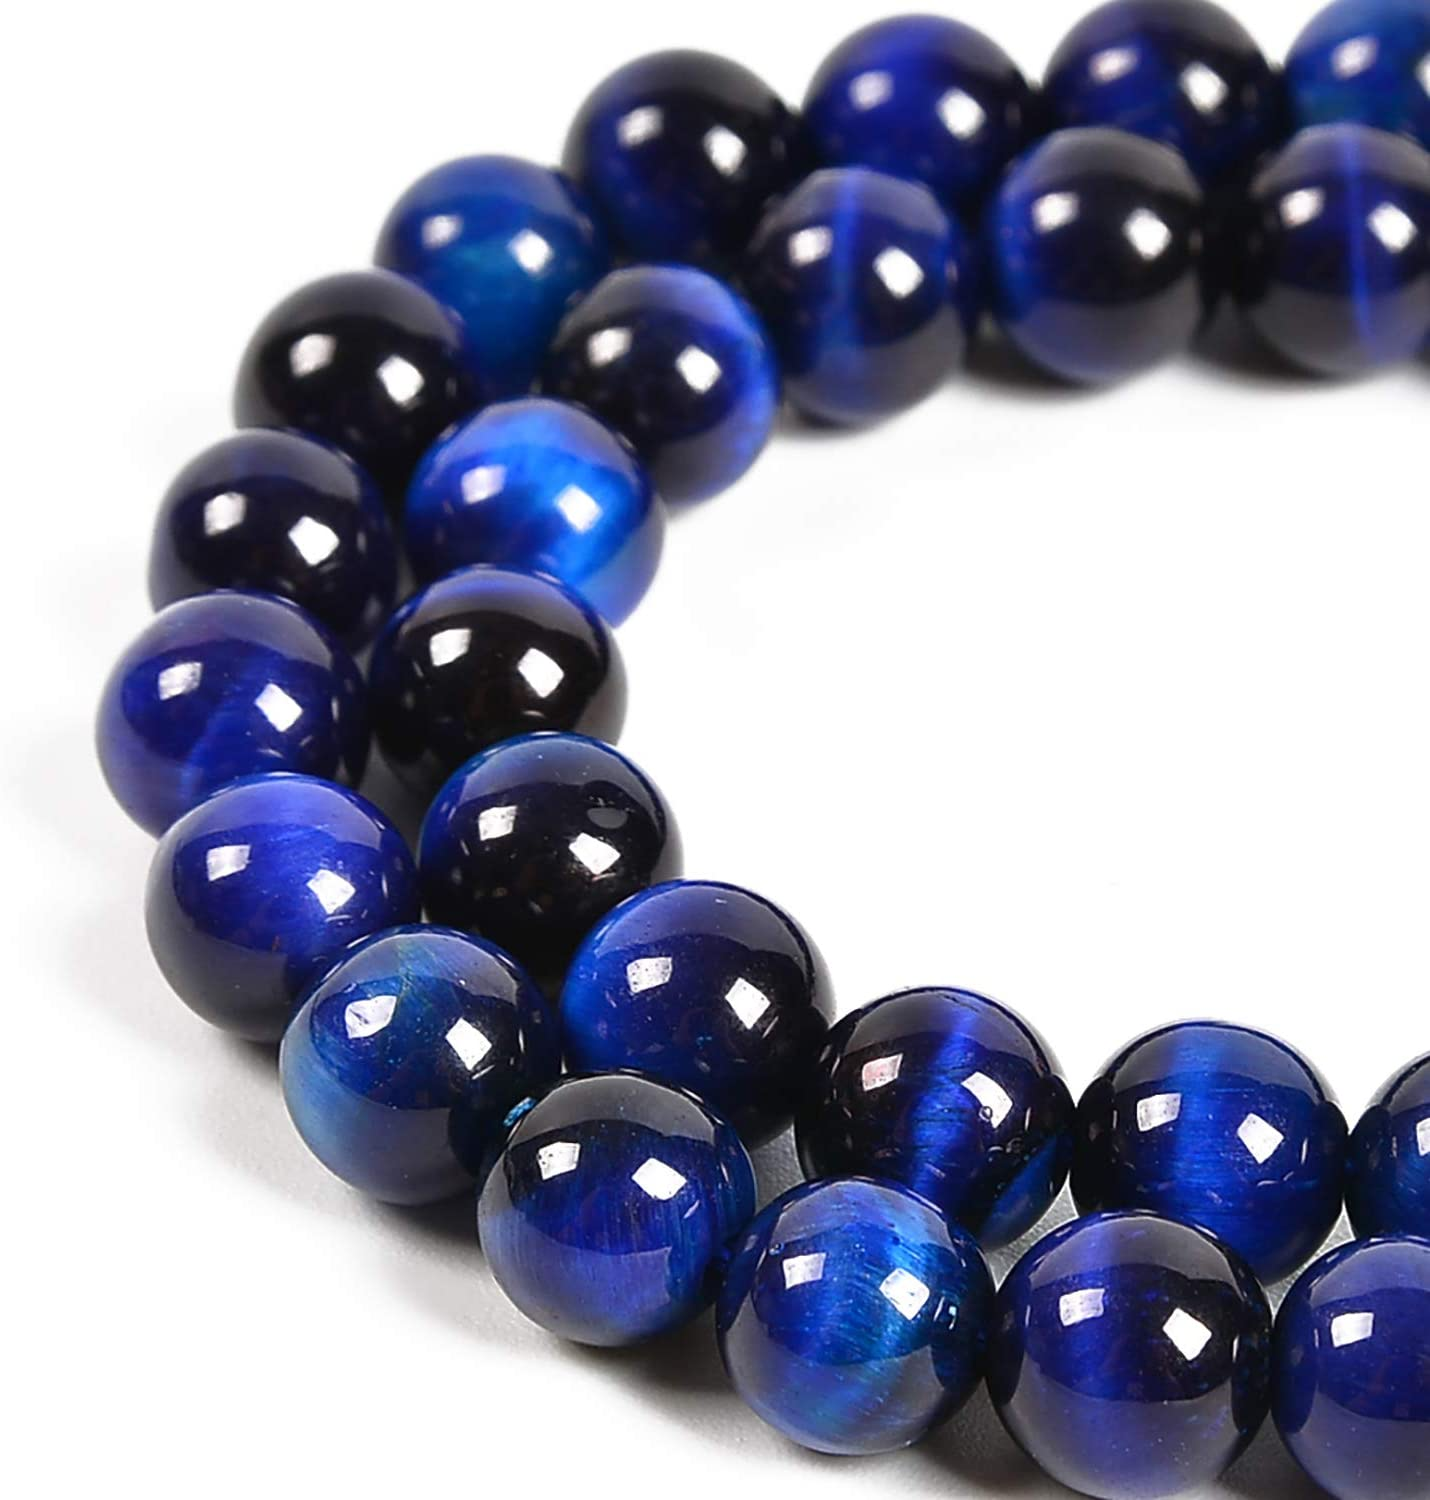 Nancybeads Natural Gemstone Round Spacer Loose Beads for Jewelry Making 15.5